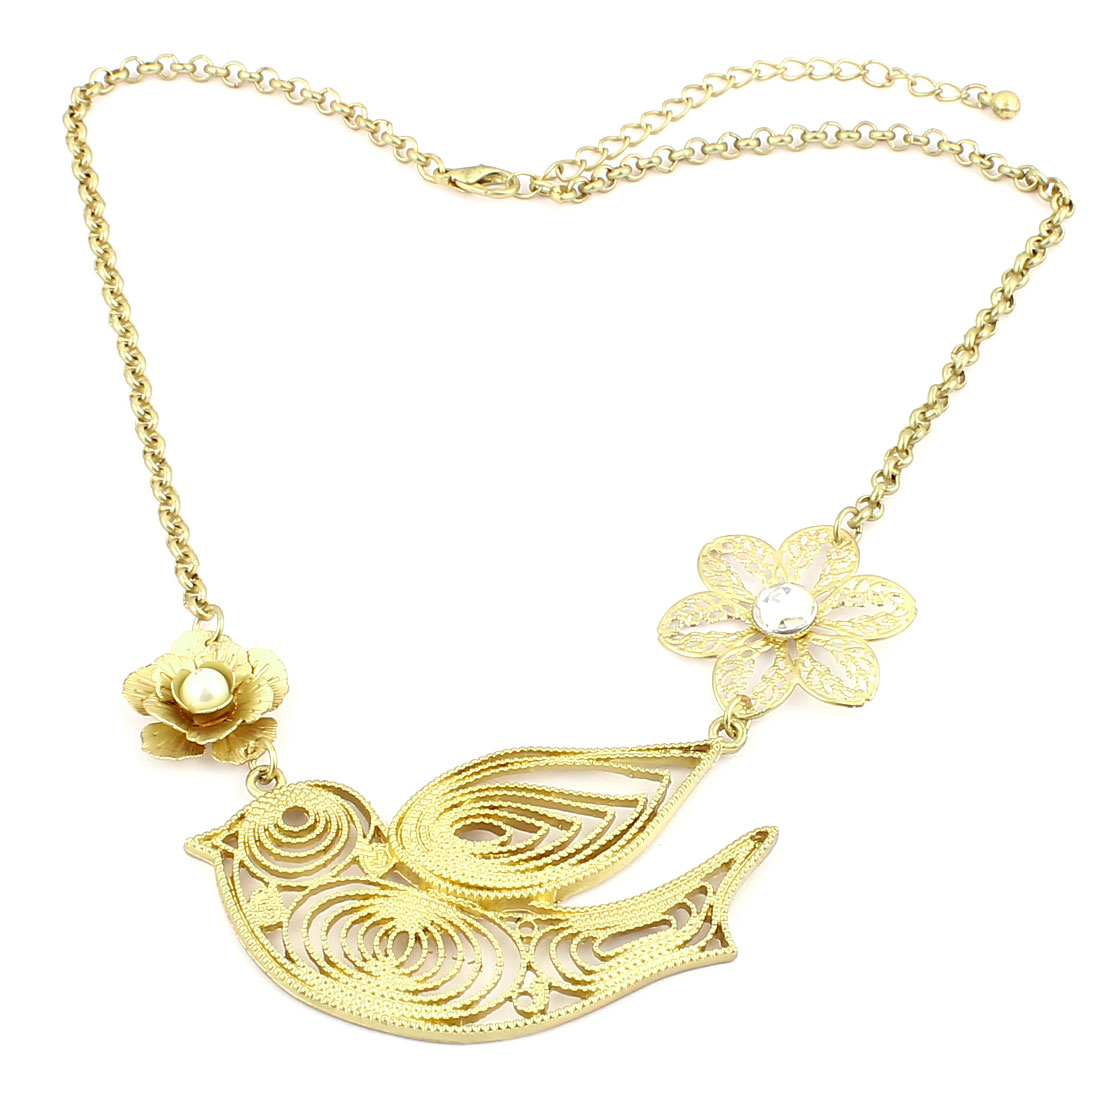 Ladies Plastic Rhinestone Decor Flowers Bird Design Metal Necklace Neckwear Gold Tone